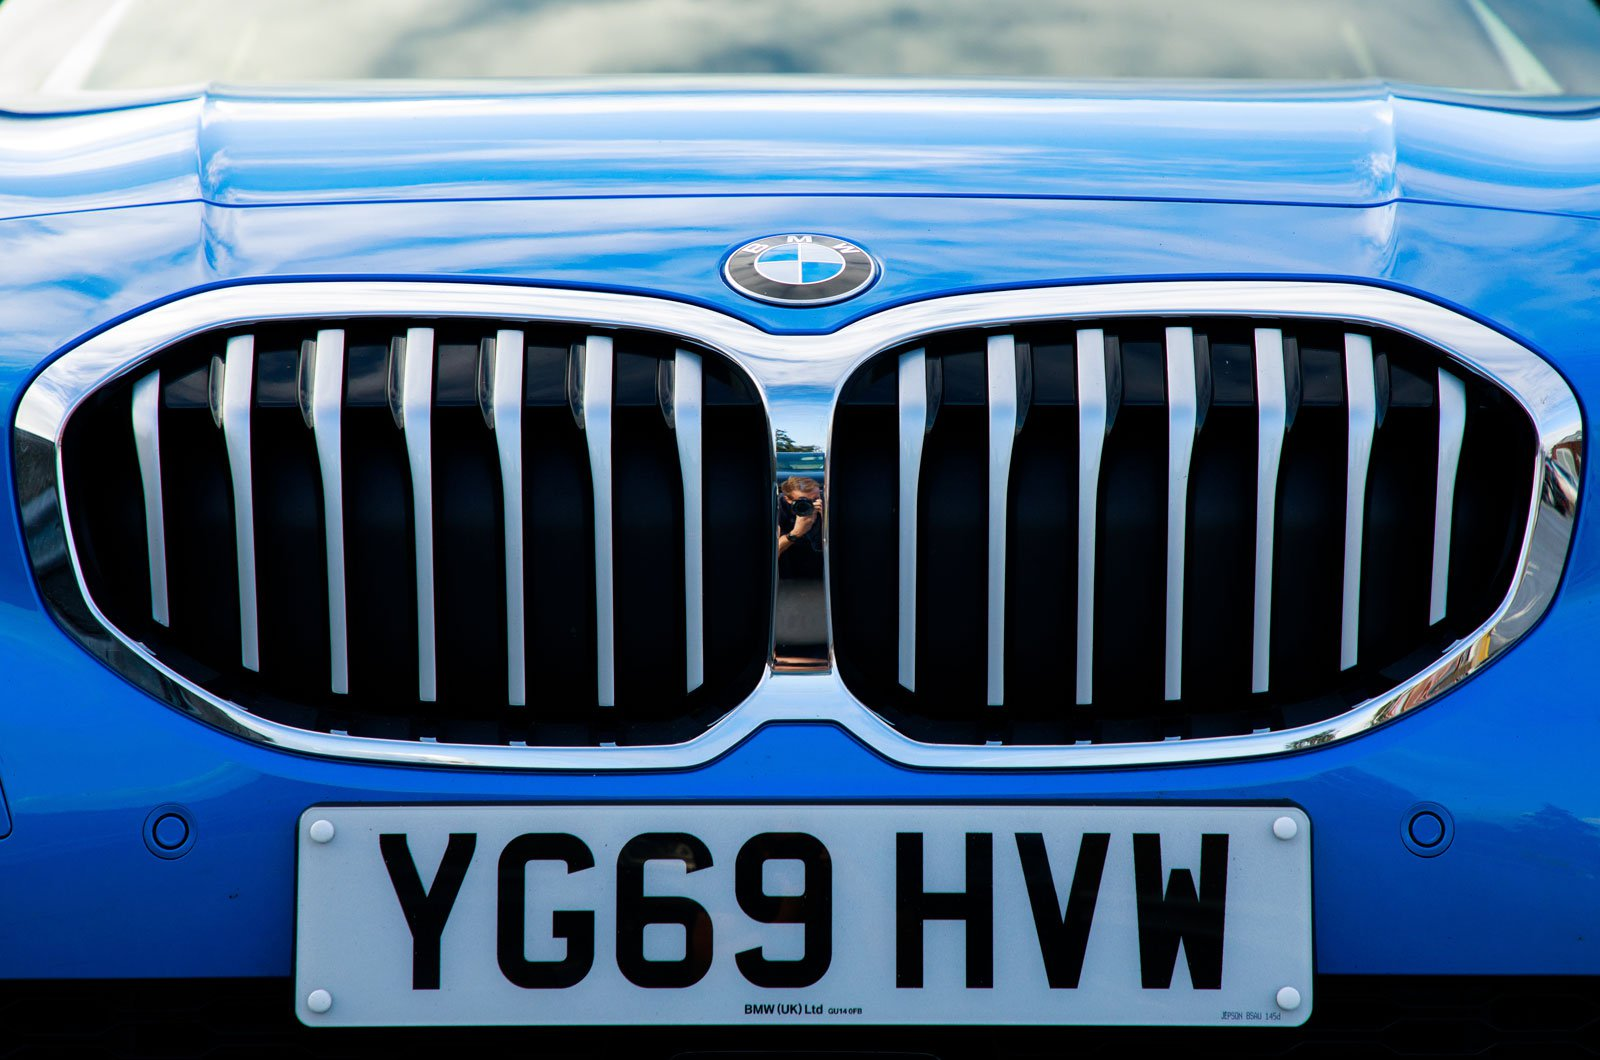 BMW 1 Series front grill